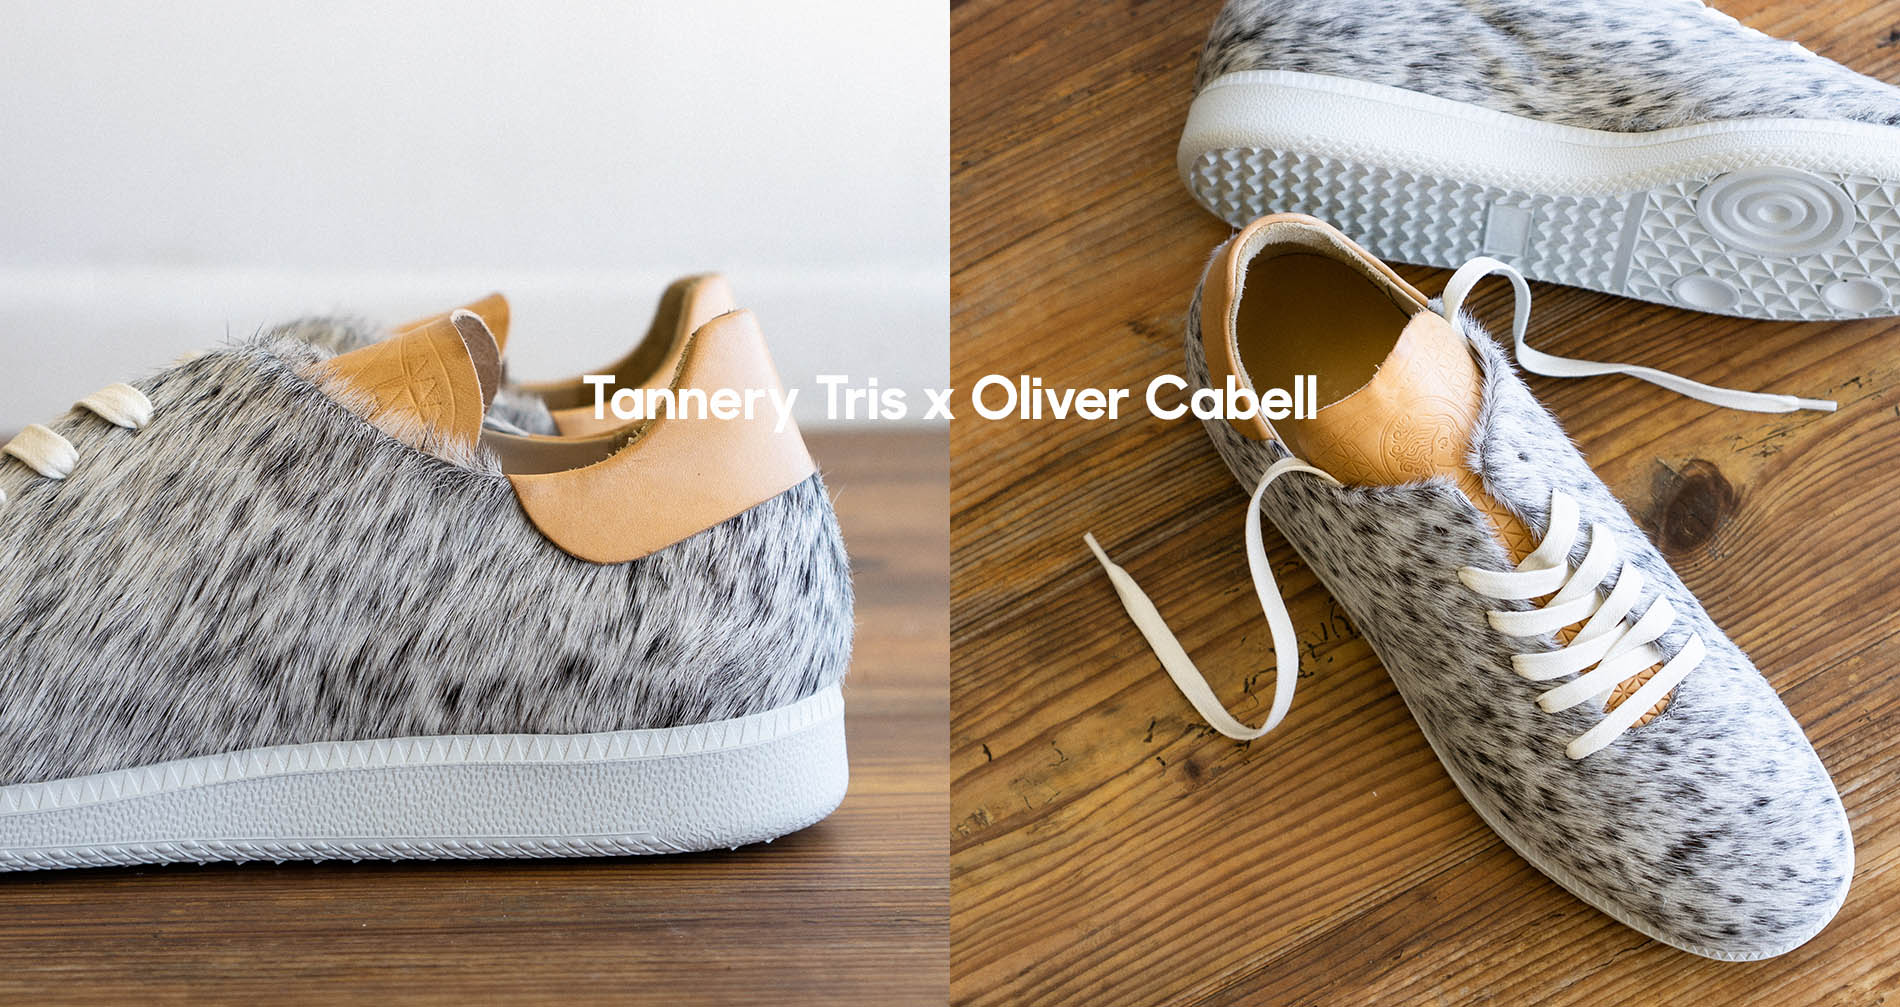 Tannery Tris x Oliver Cabell_0